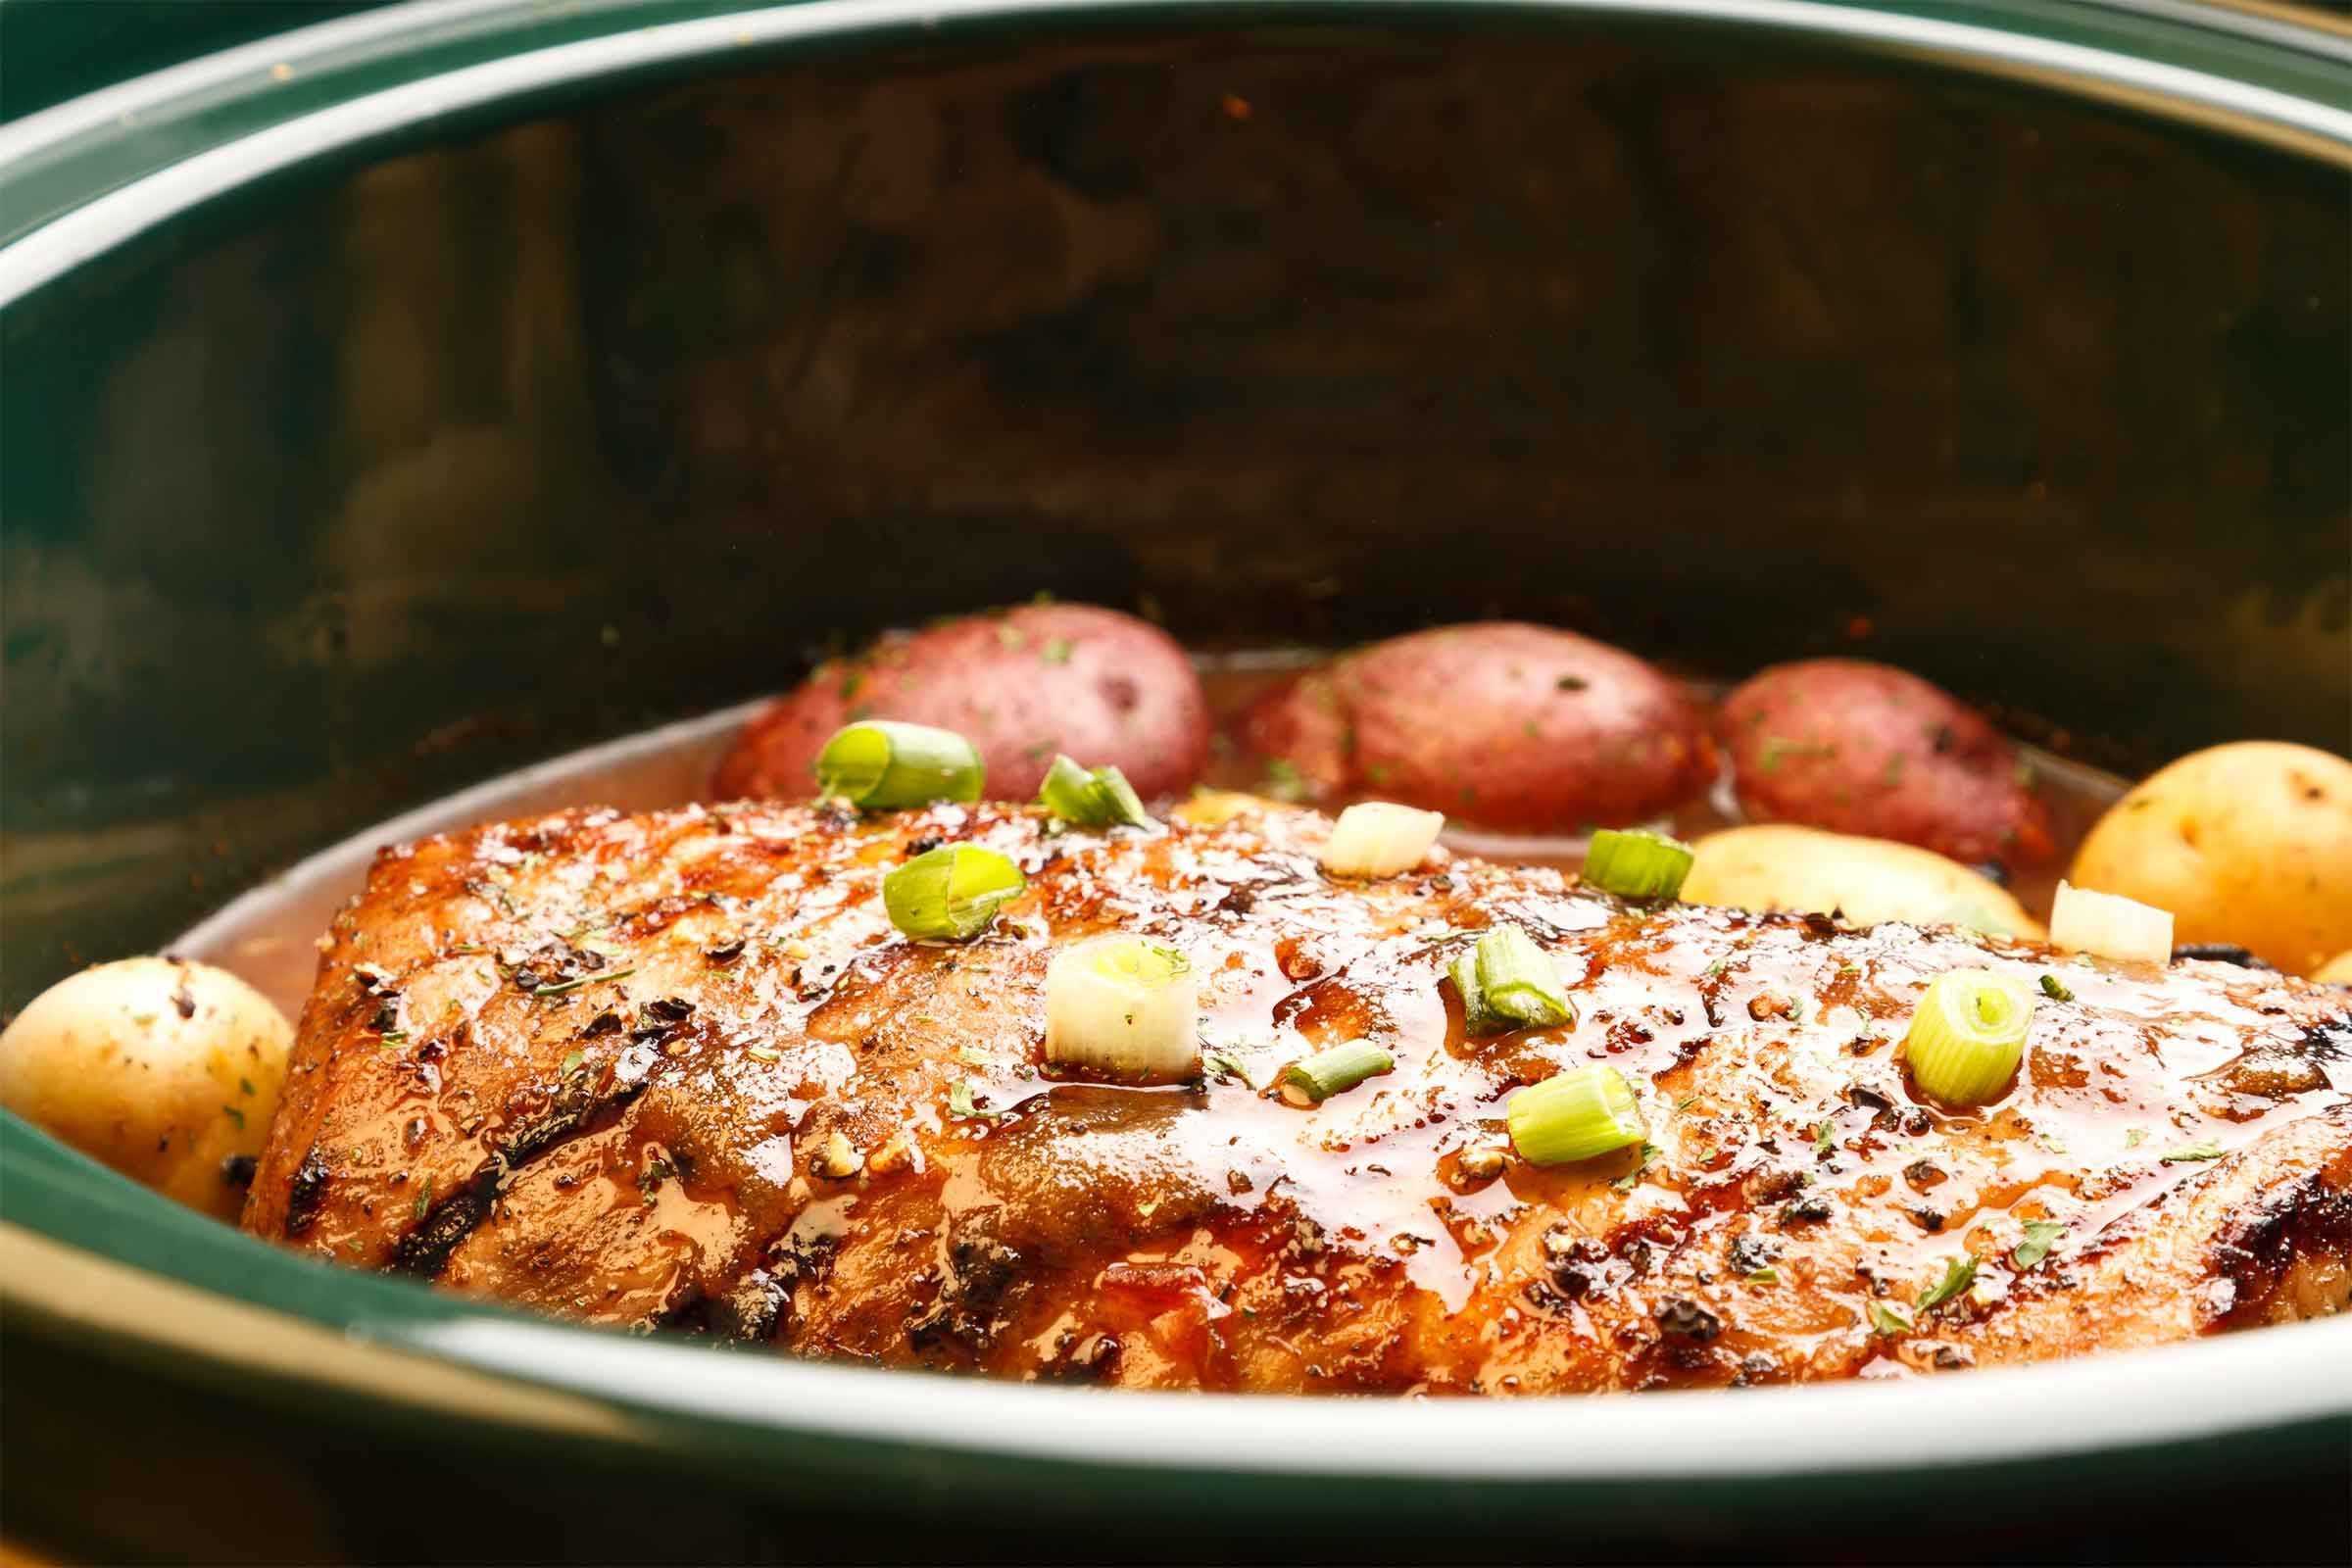 15 Ways You've Been Using Your Slow Cooker Wrong (And How to Fix Them!)